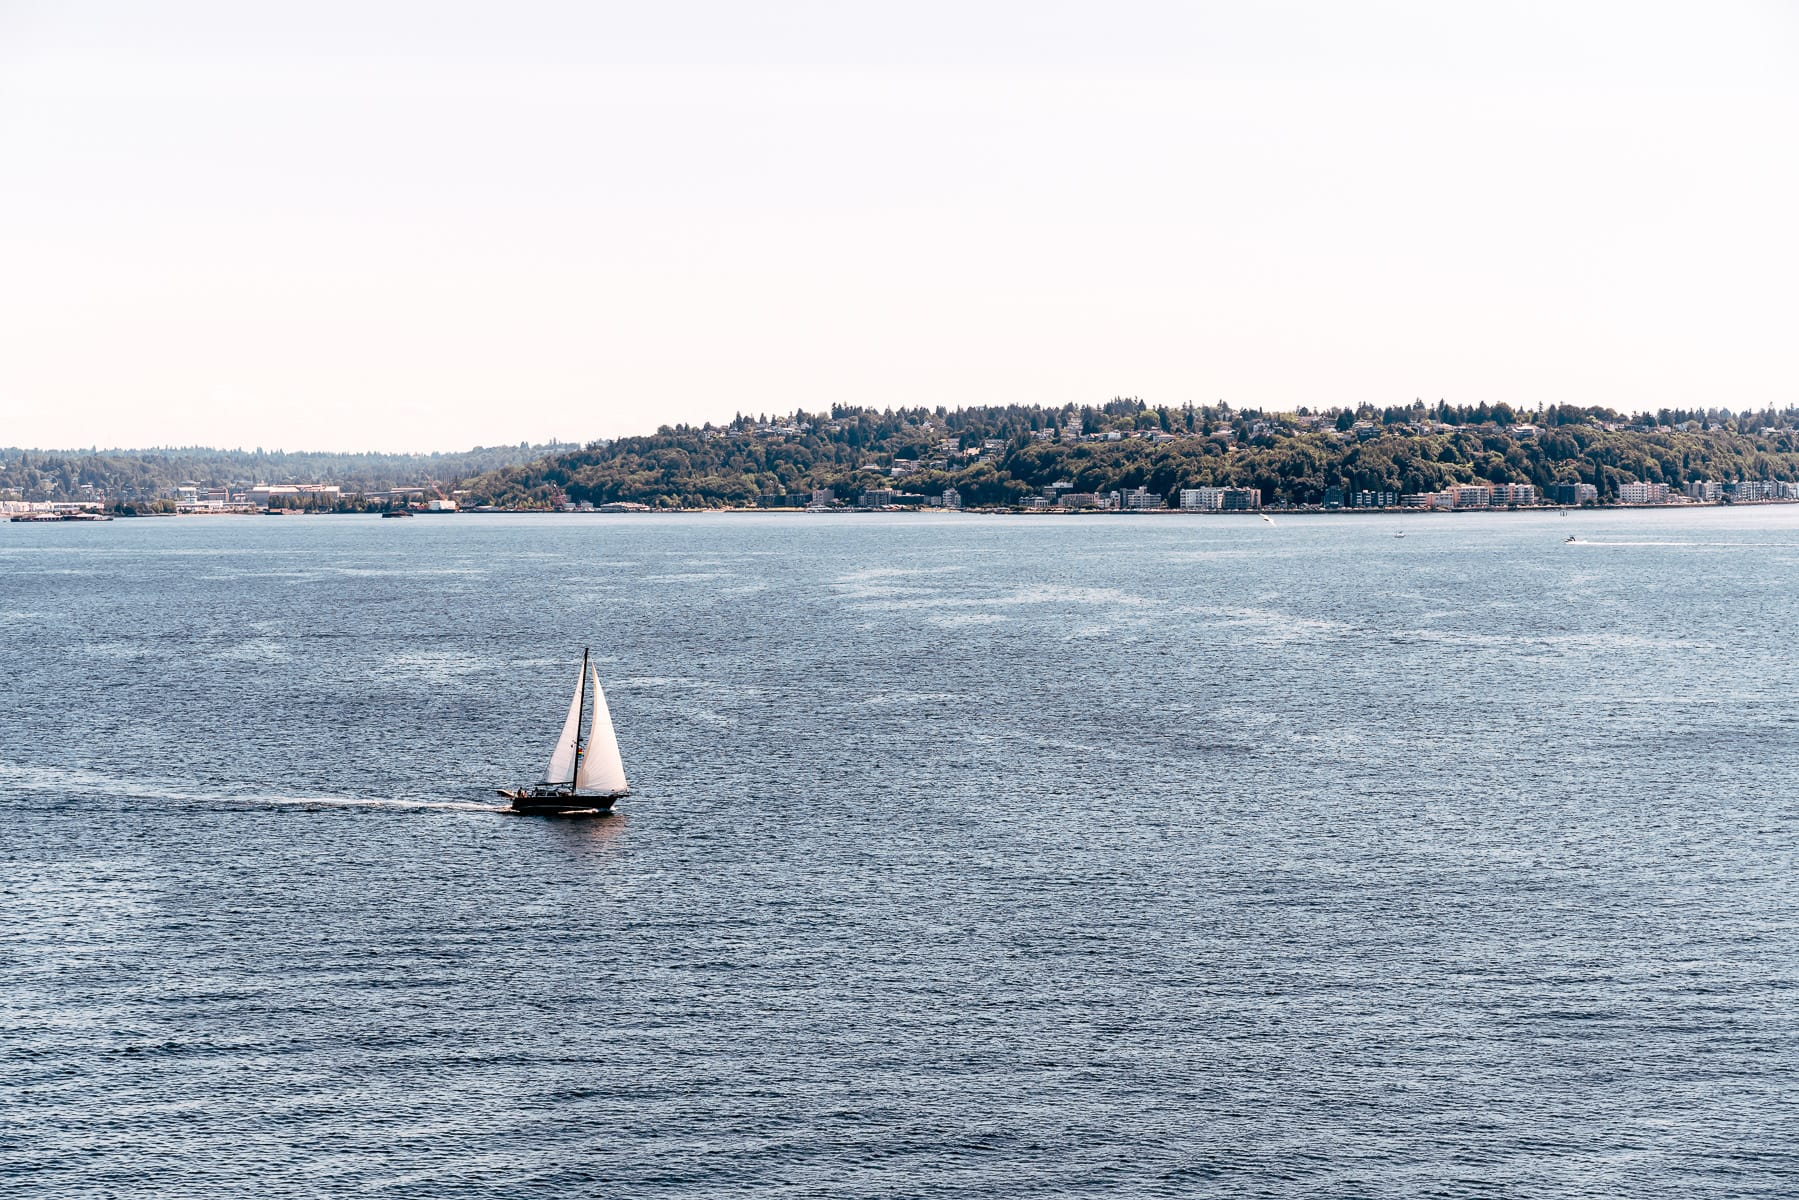 A sailboat plies the waters of the Puget Sound in the Salish Sea near Seattle, Washington.